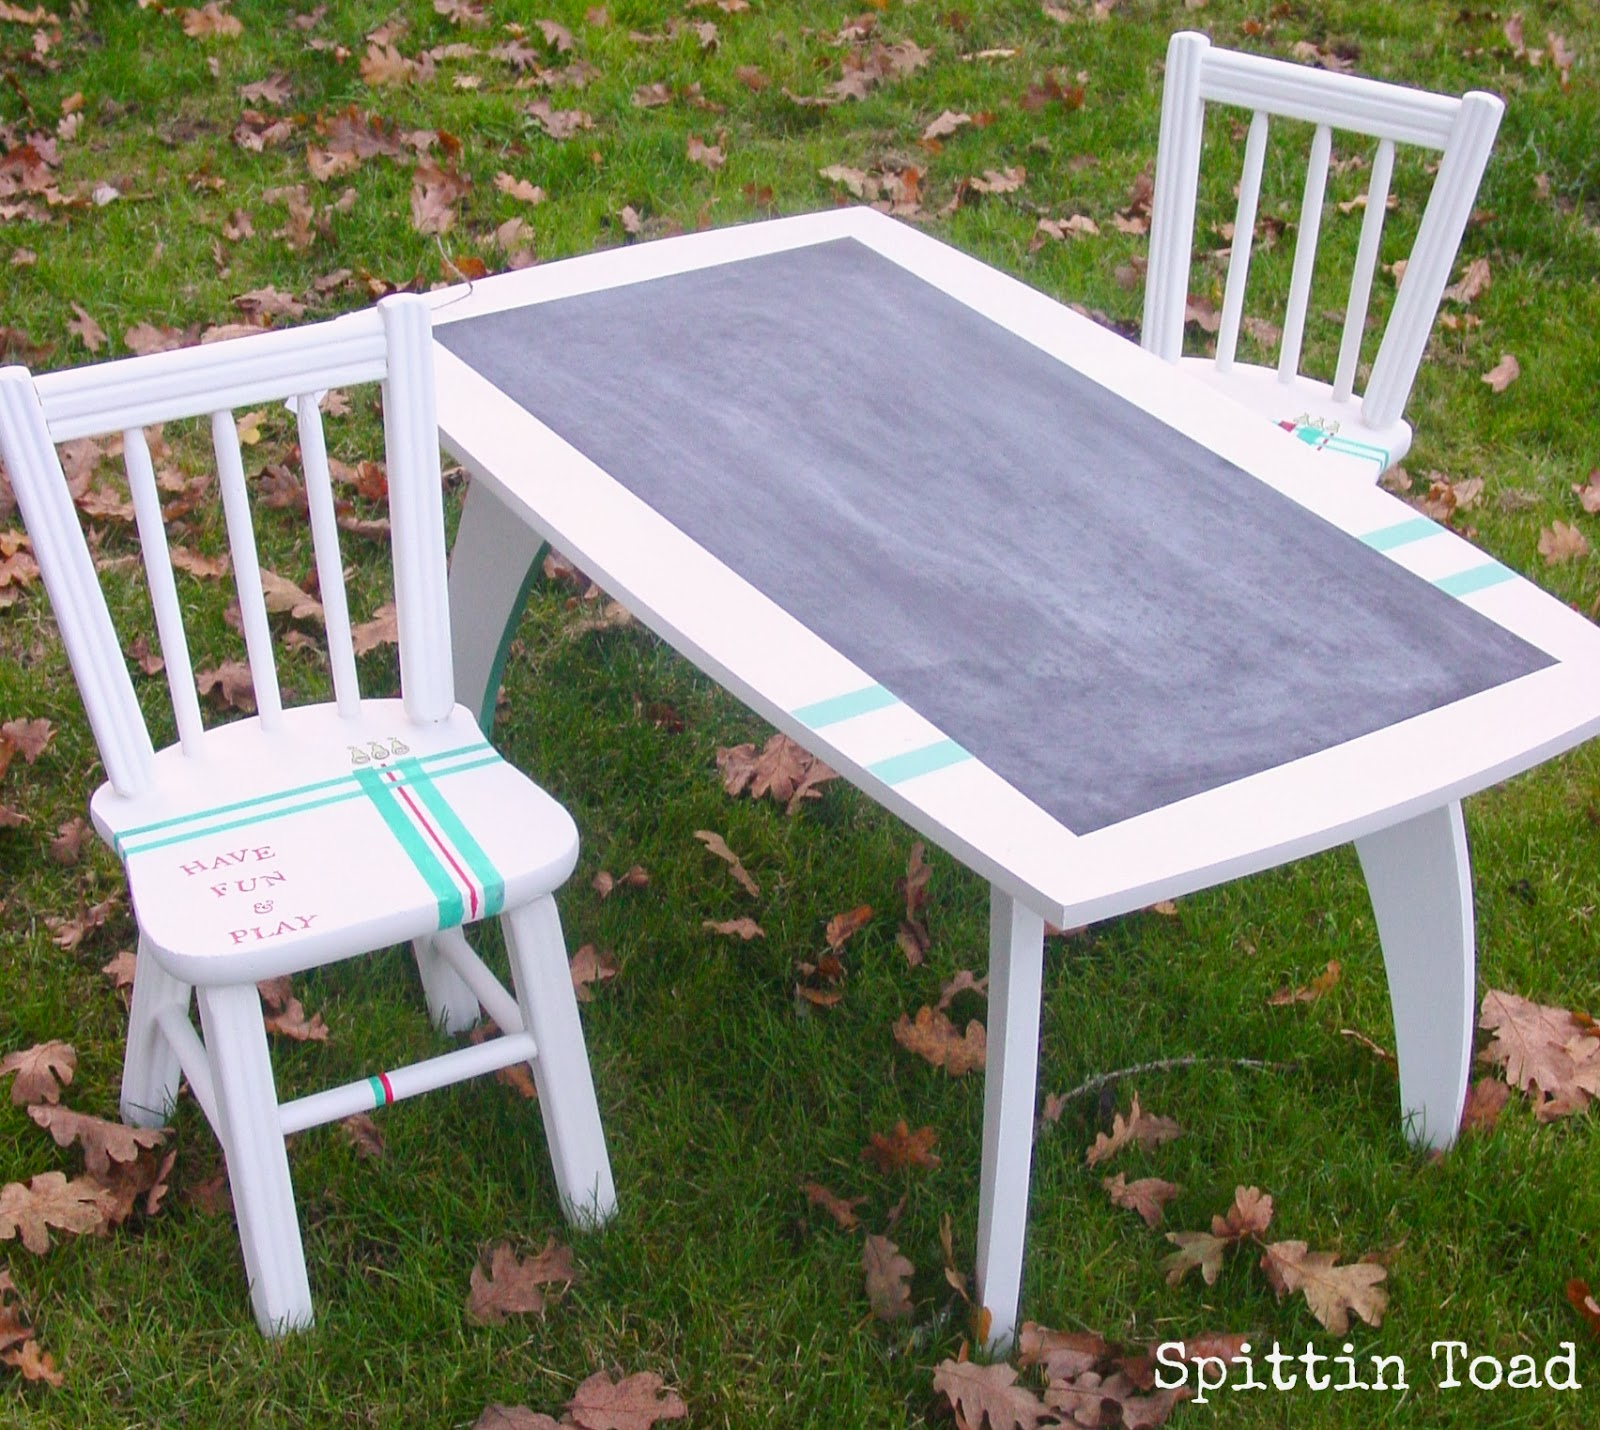 Spittin Toad Chalkboard Table And Chairs